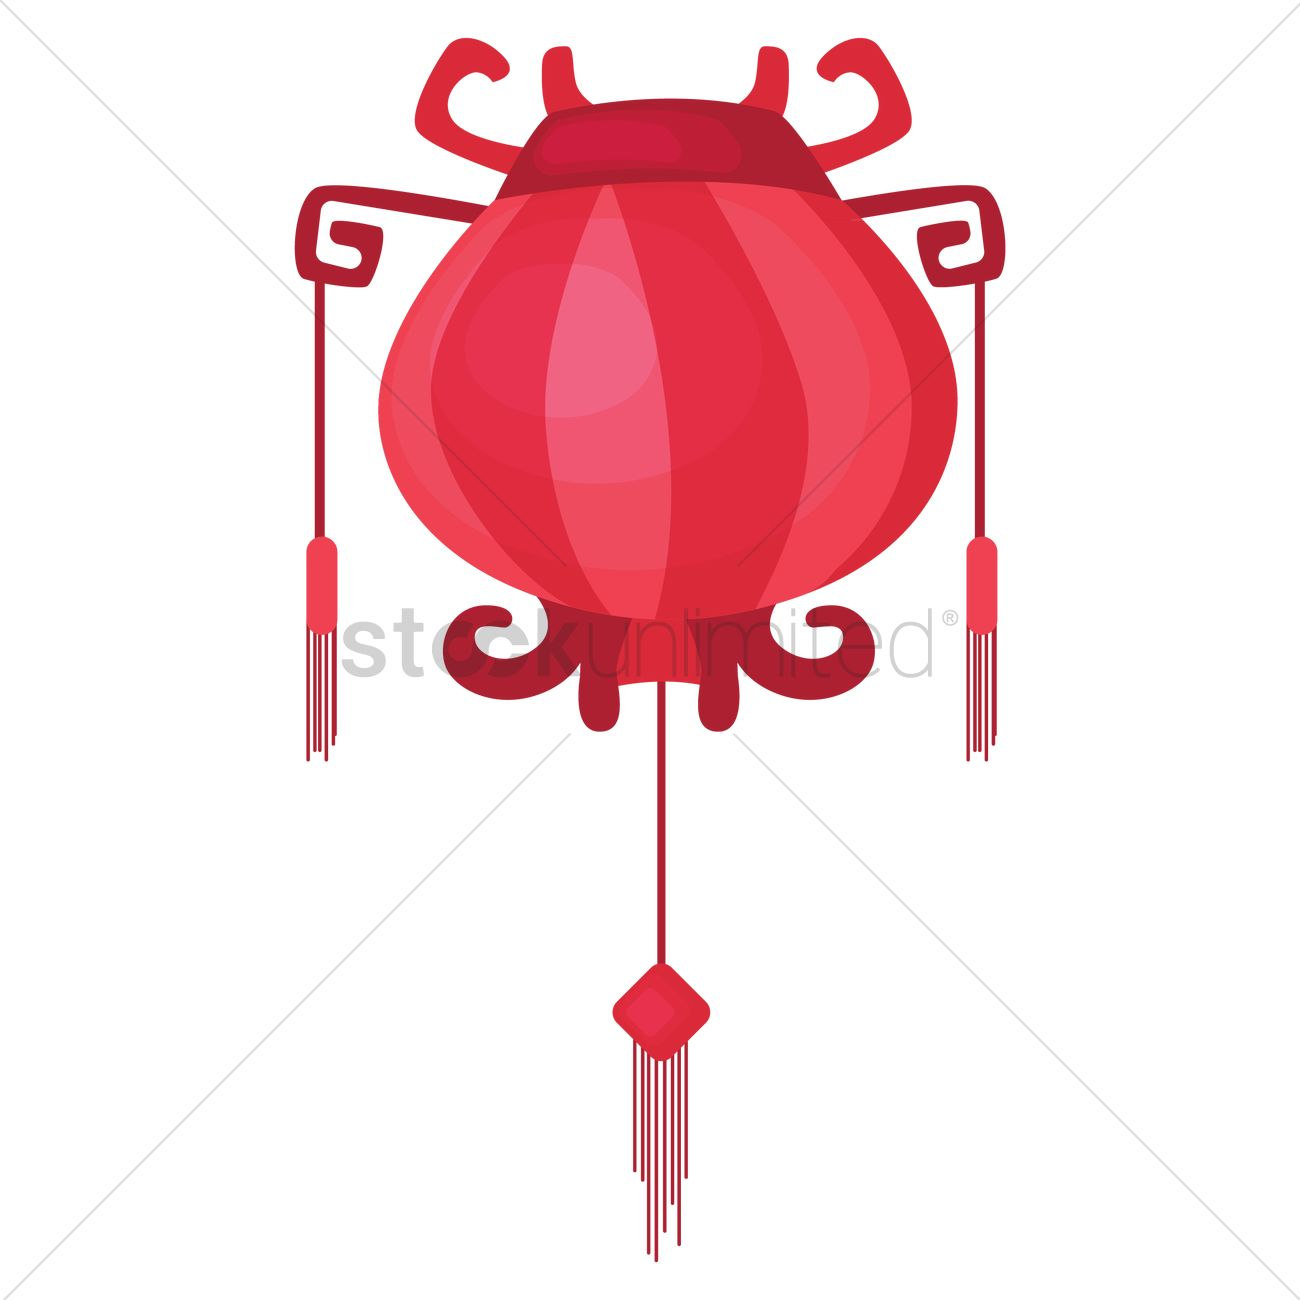 chinese new year traditional red lantern vector graphic - Chinese New Year Lantern